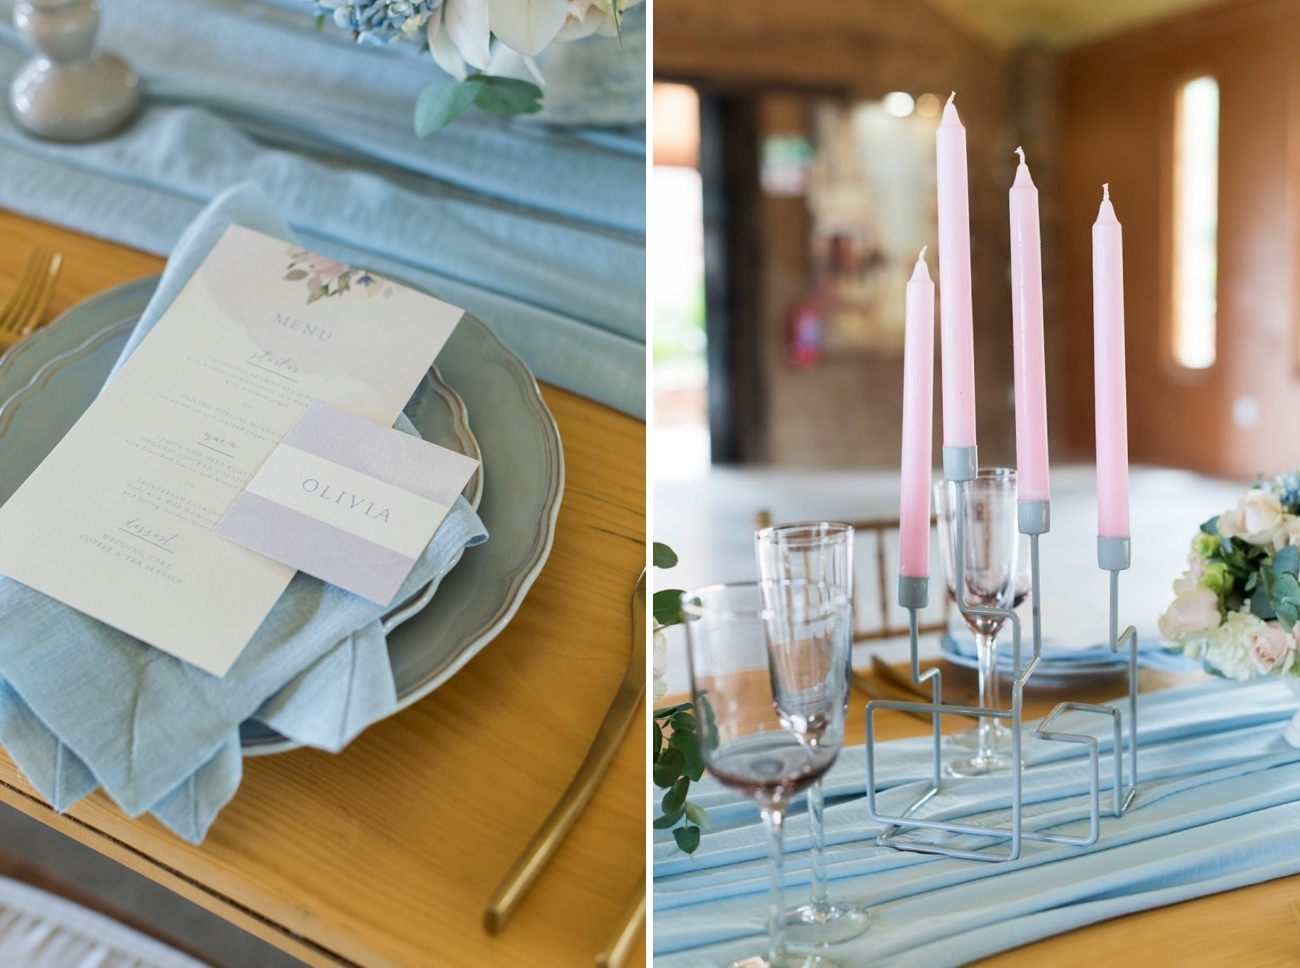 Pantone Serenity & Rose Quartz Wedding Inspiration | Credit: Jack & Jane Photography